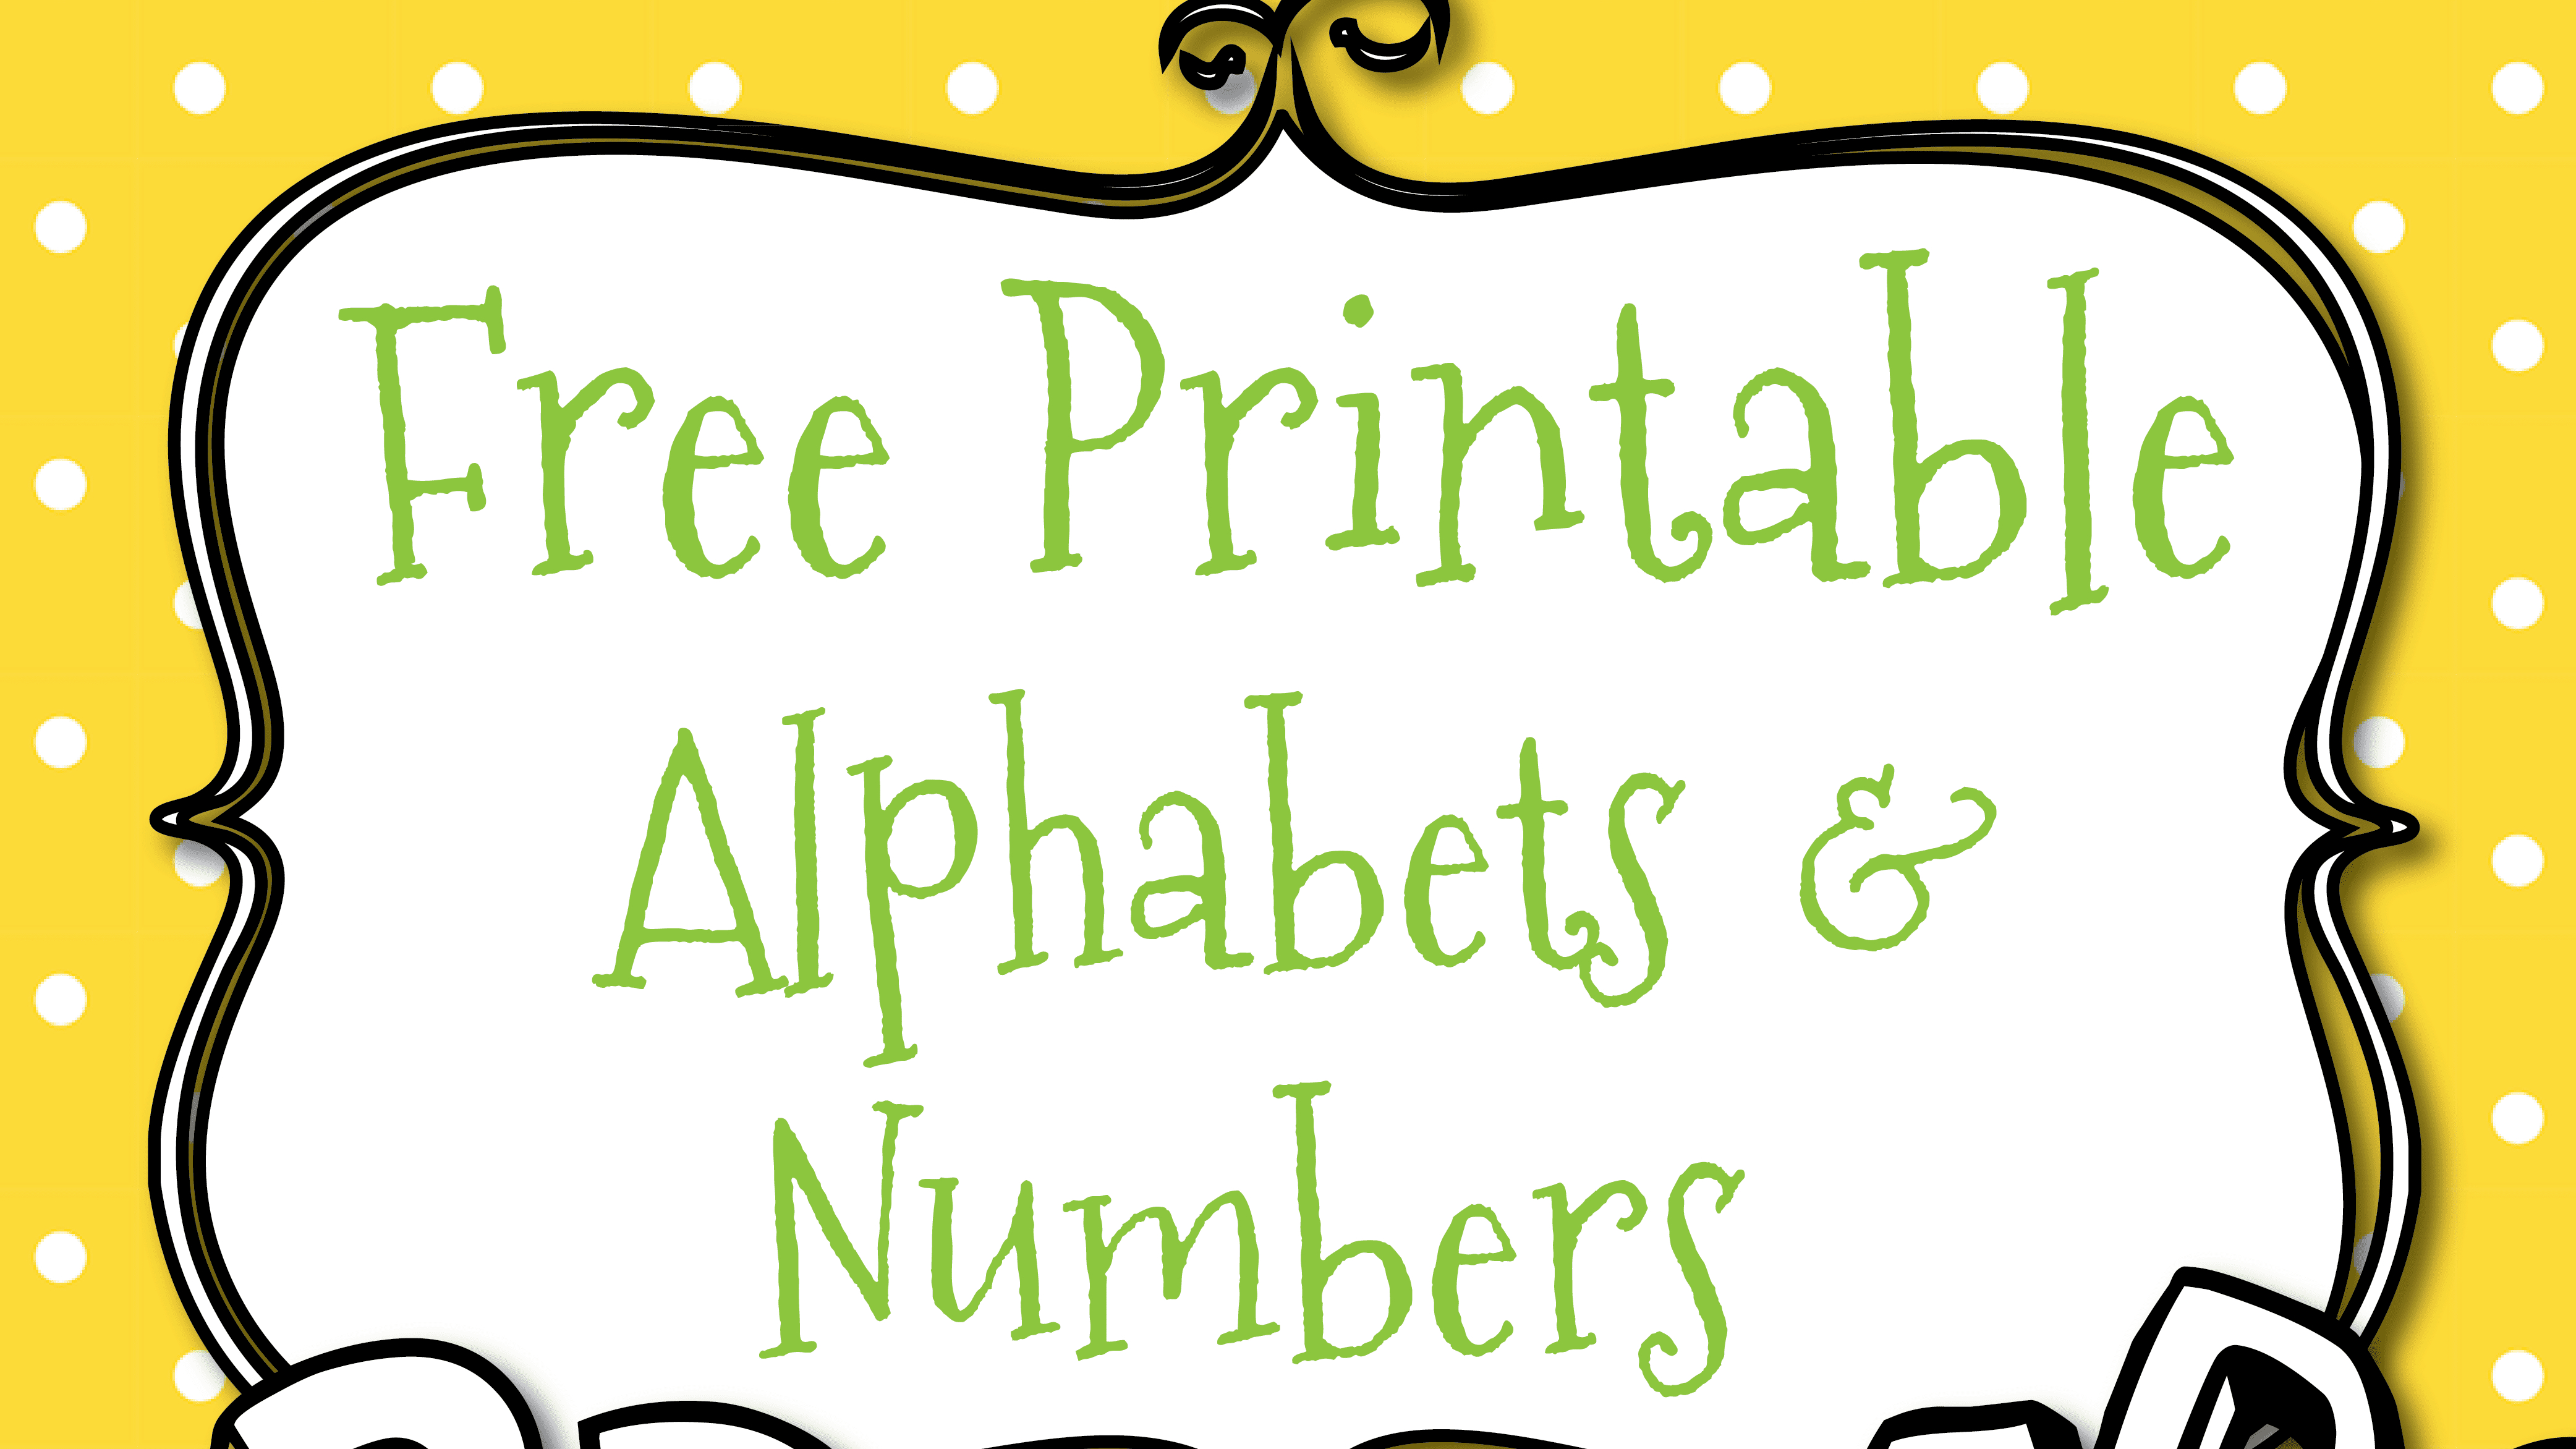 Free Printable Letters And Numbers For Crafts - Free Printable Block Letters